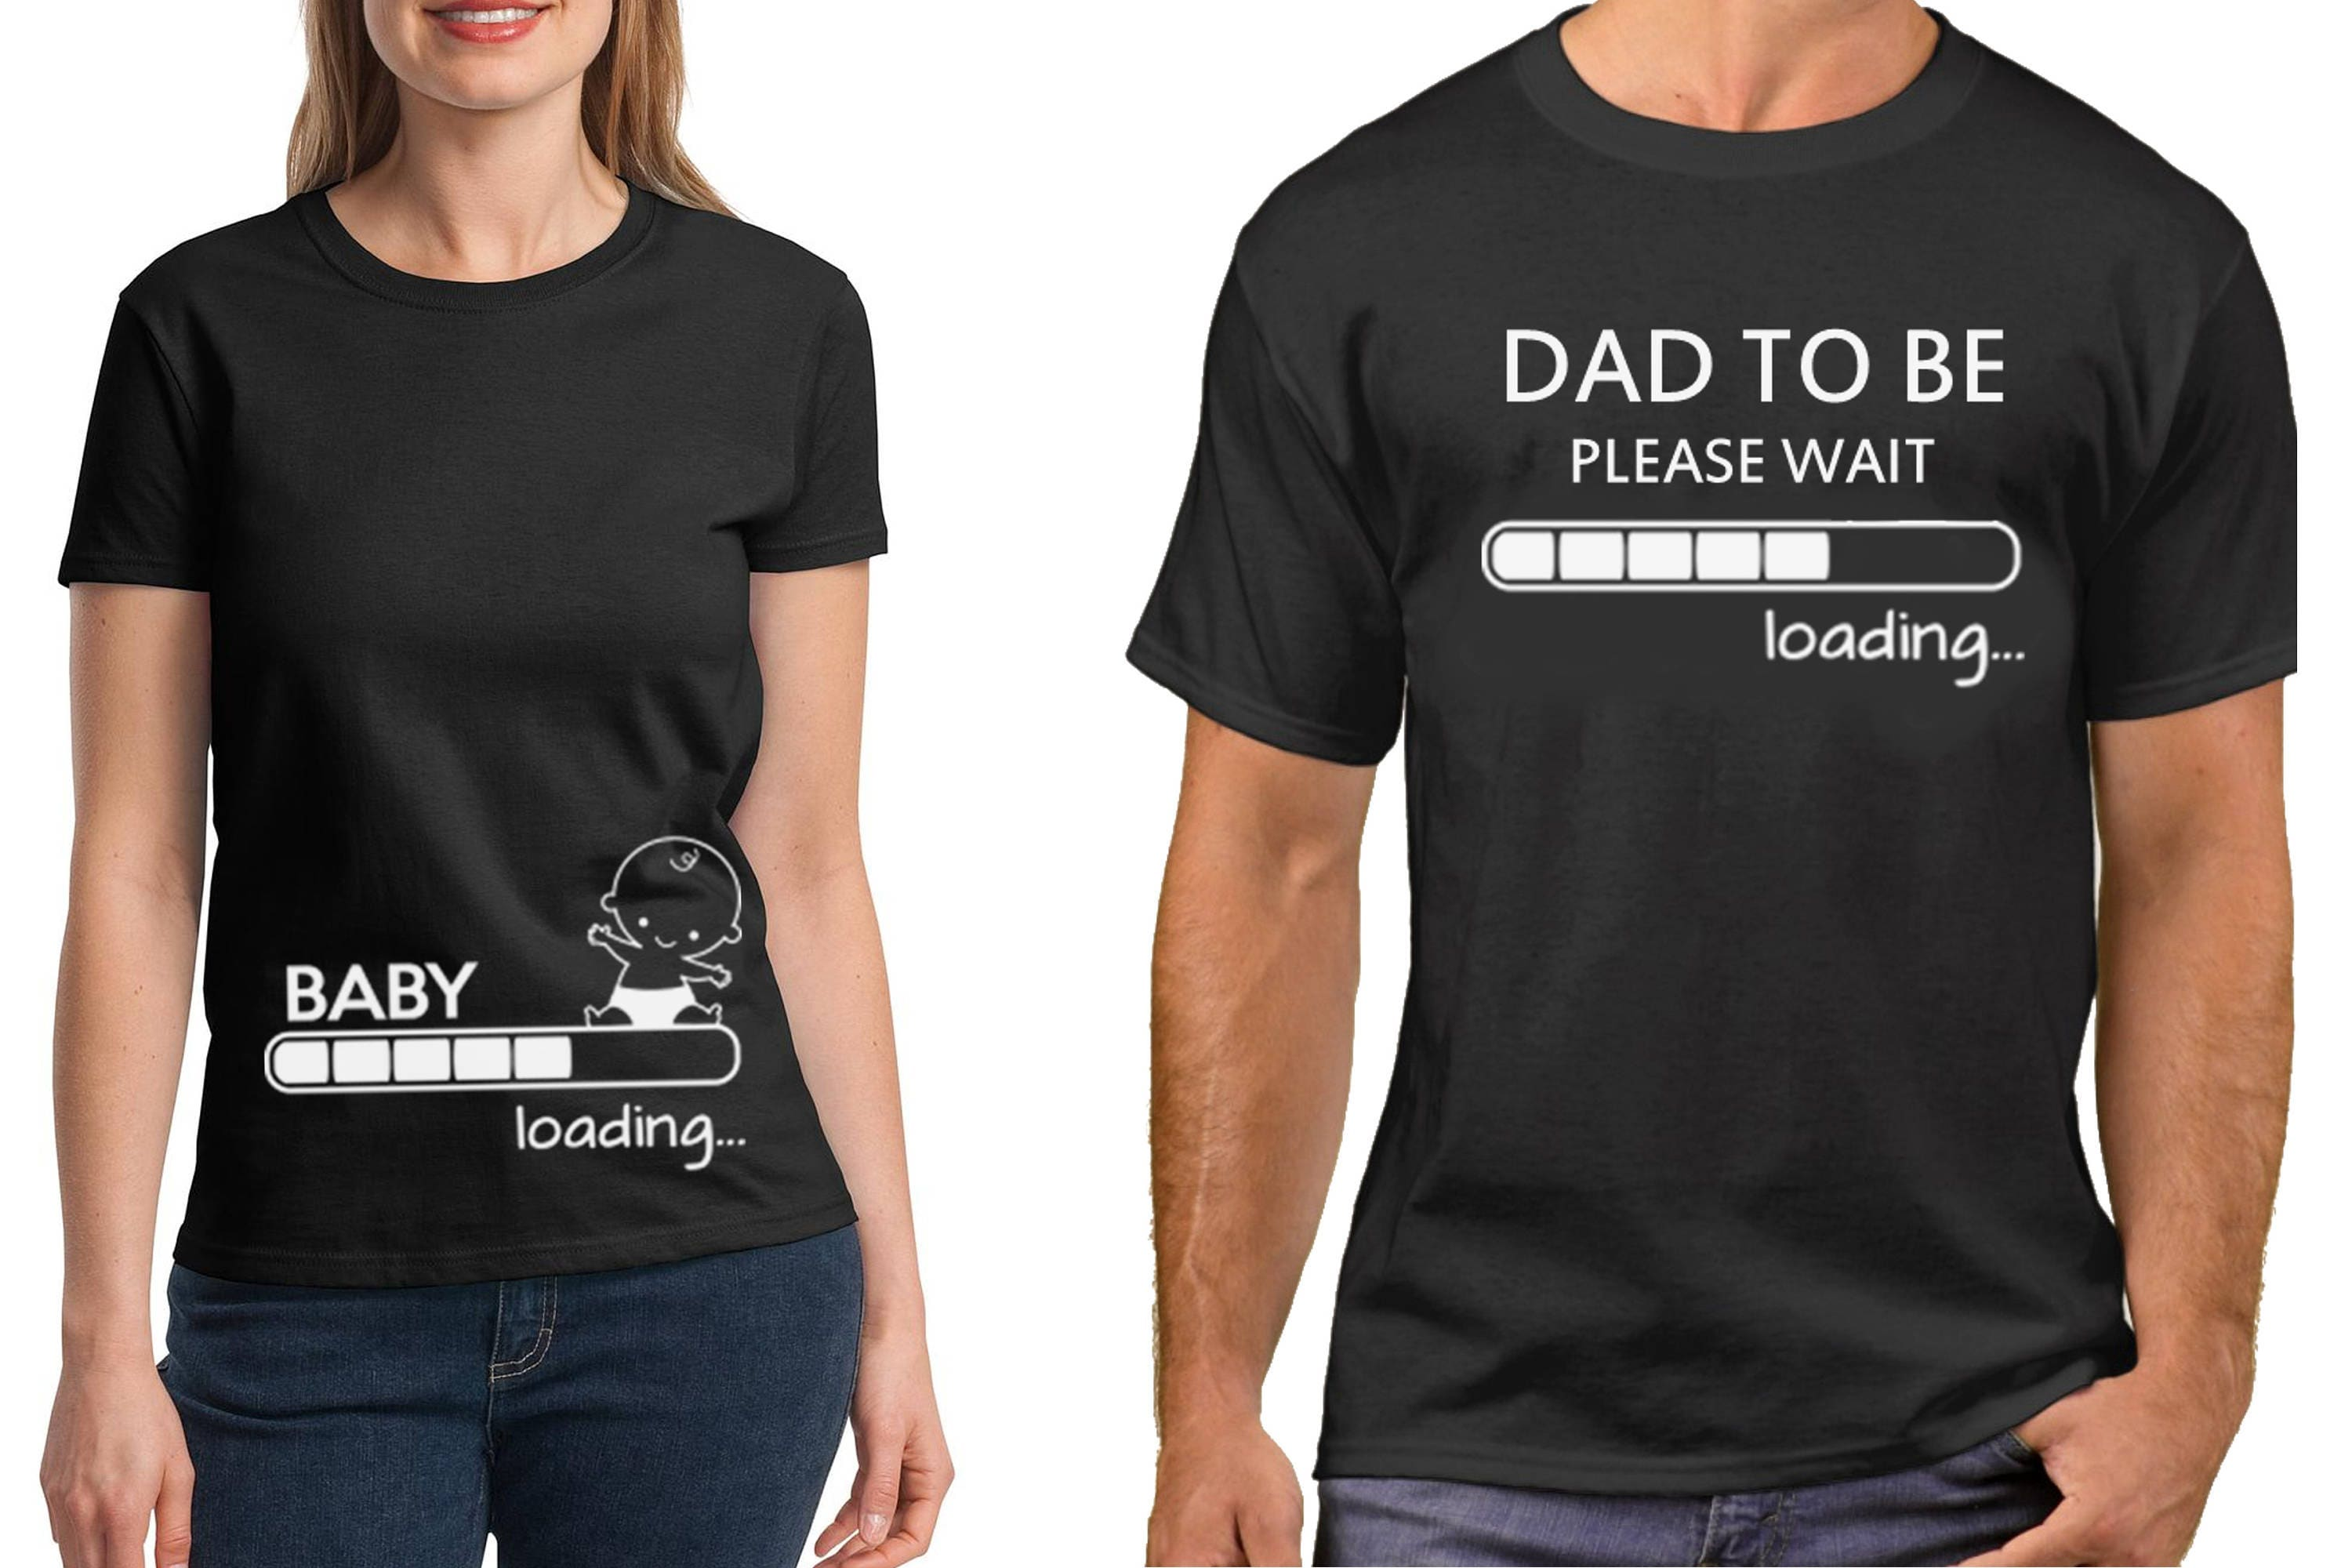 Pregnancy Funny Couple TShirts Baby Loading Dad To Be T Shirt – T Shirt Baby Announcement